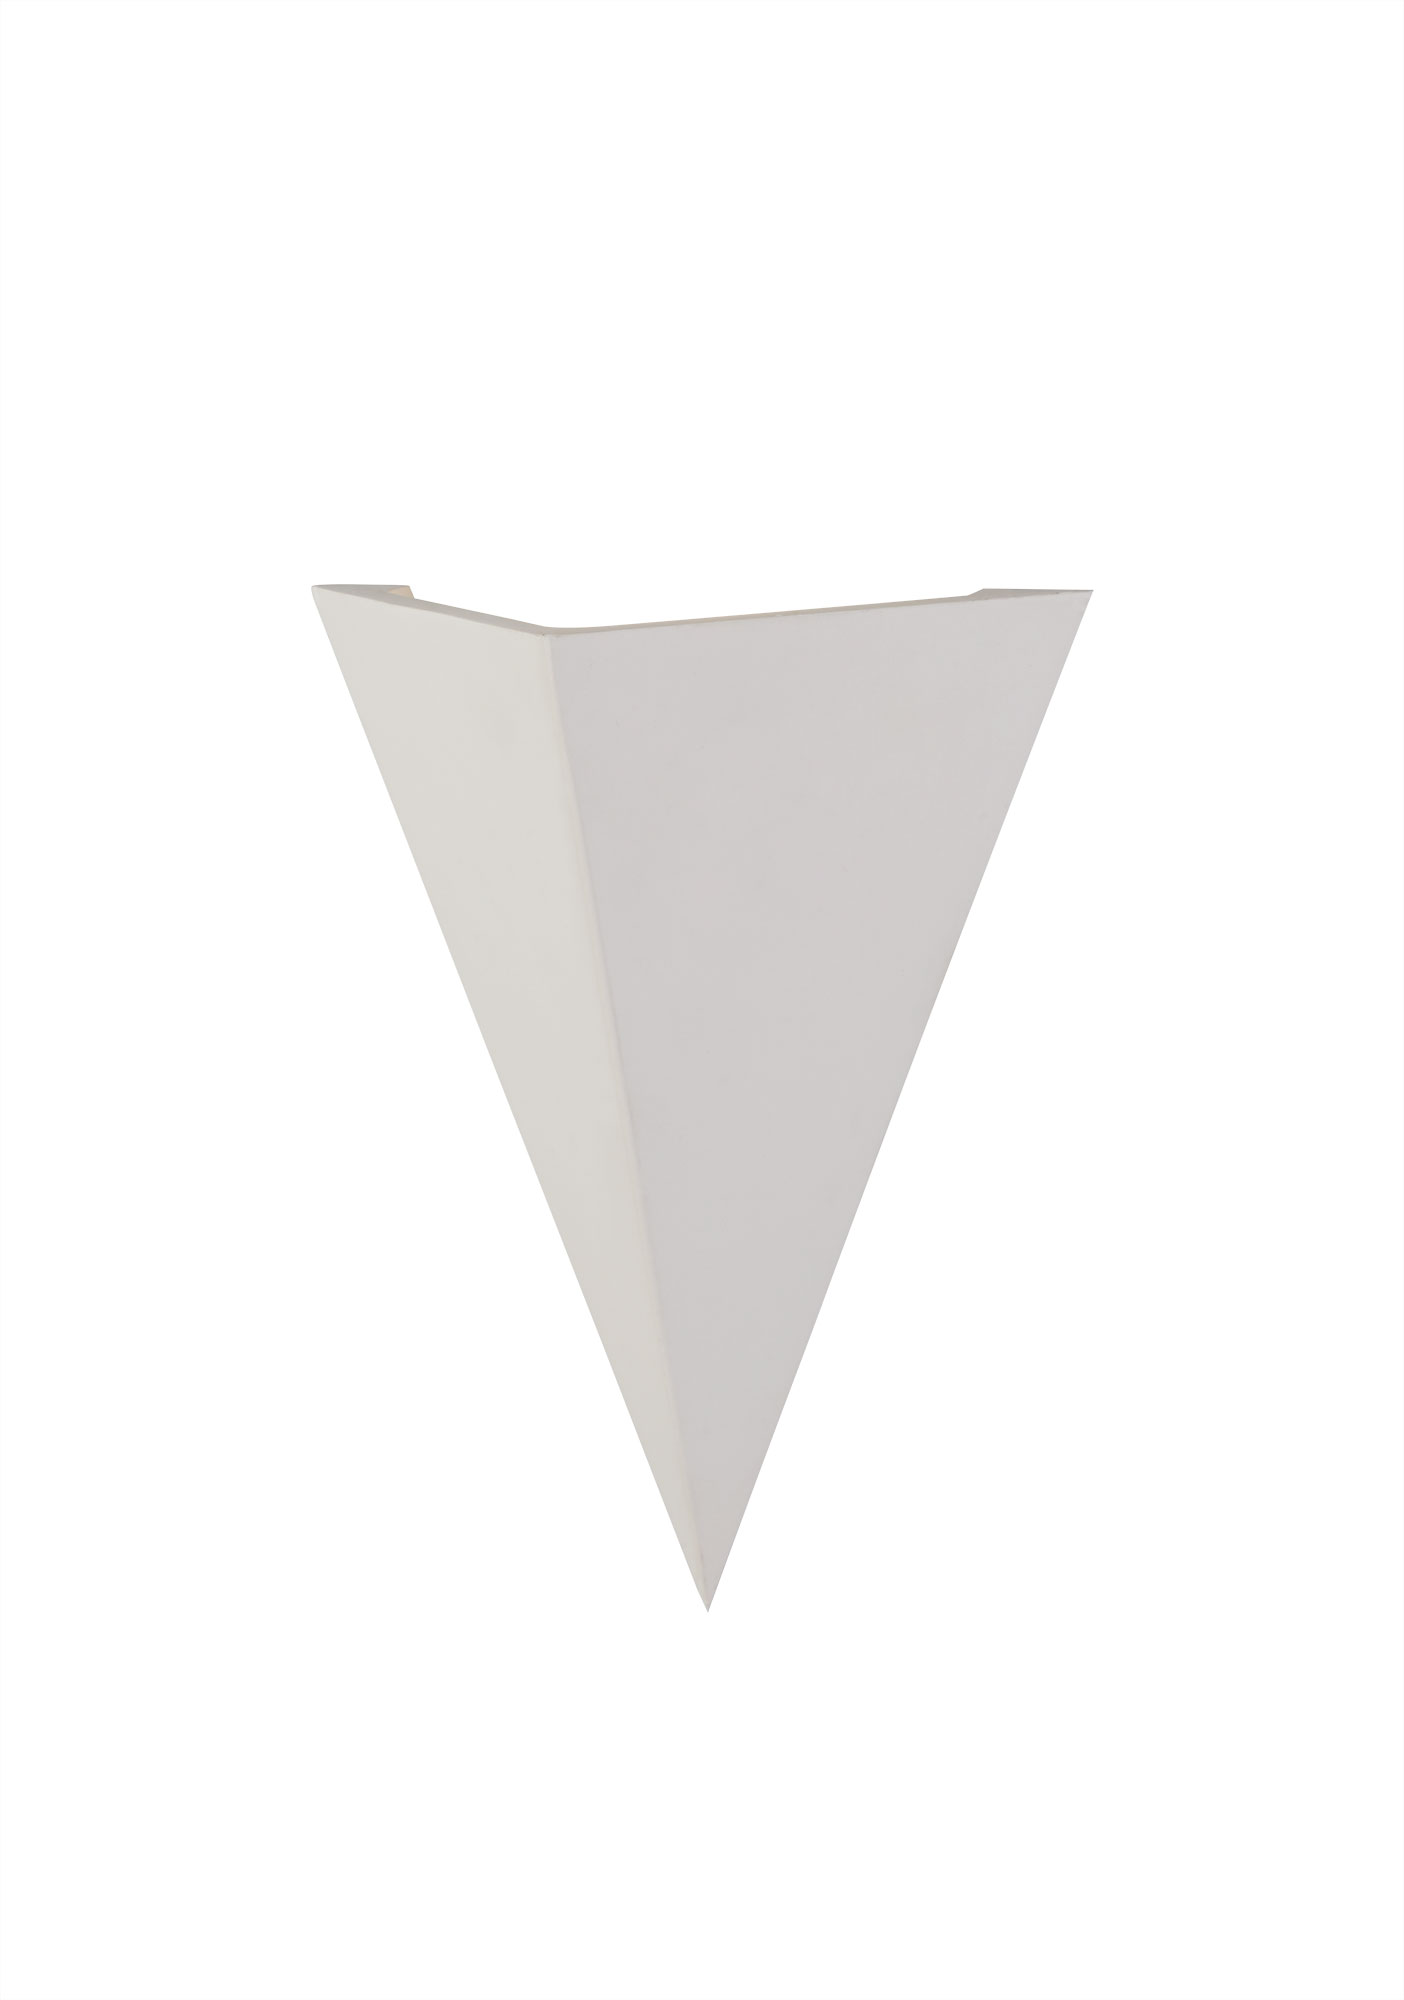 Triangle Wall Lamp, 1 x G9, White Paintable Gypsum